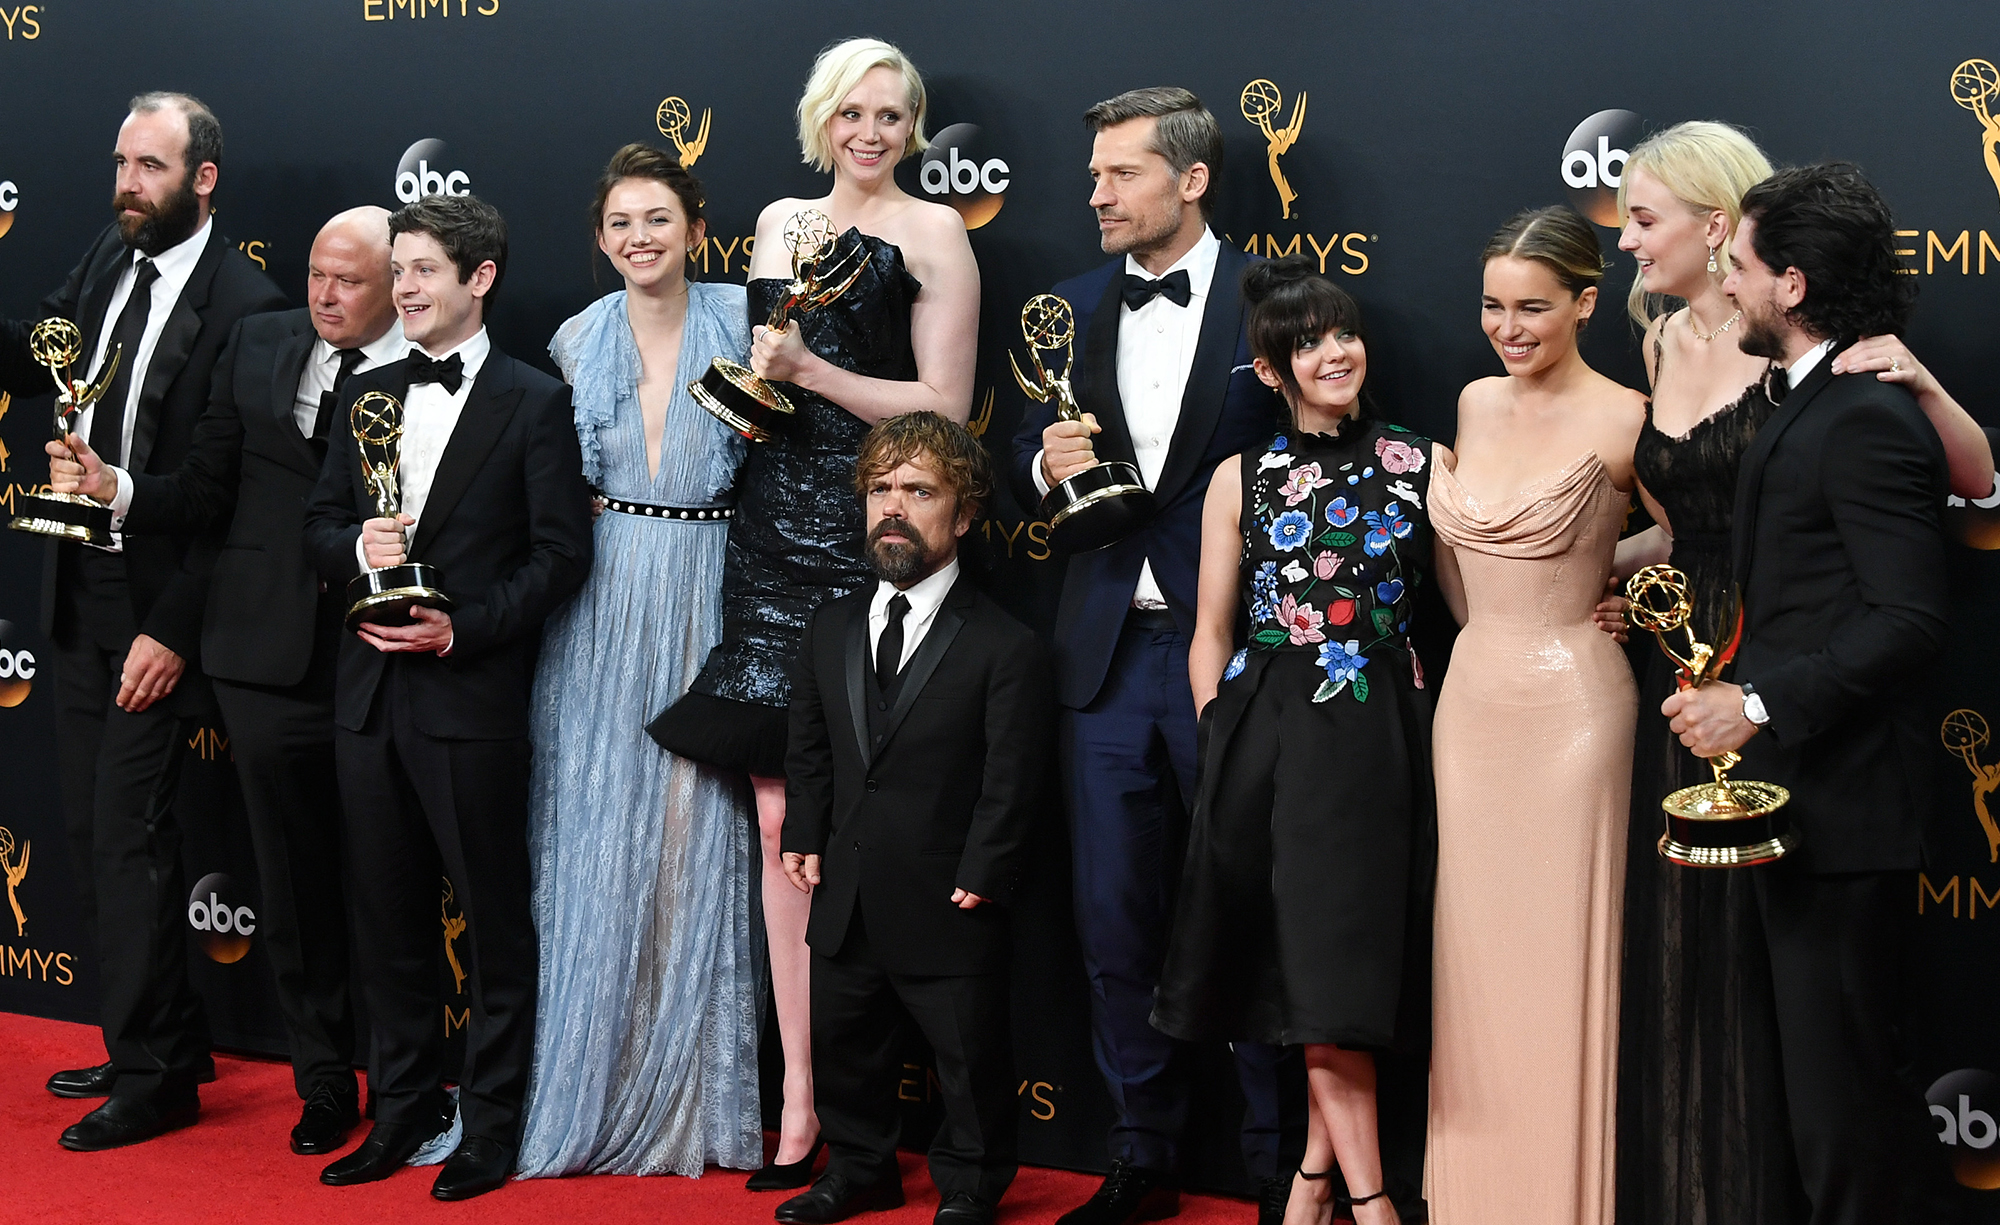 Game of Thrones Cast | Euro Palace Casino Blog